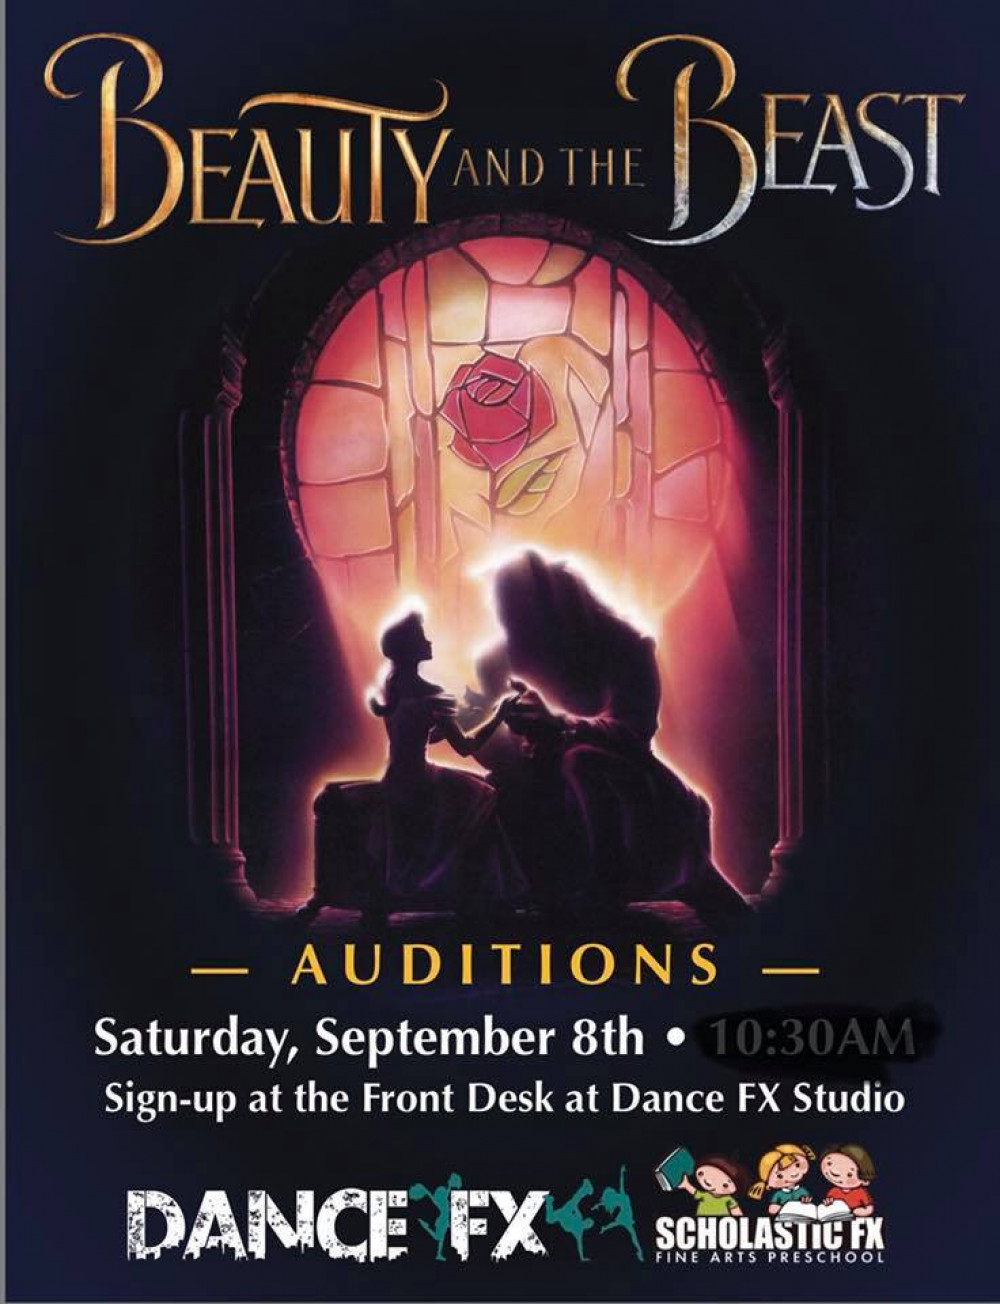 AUDITIONS for Beauty and the Beast